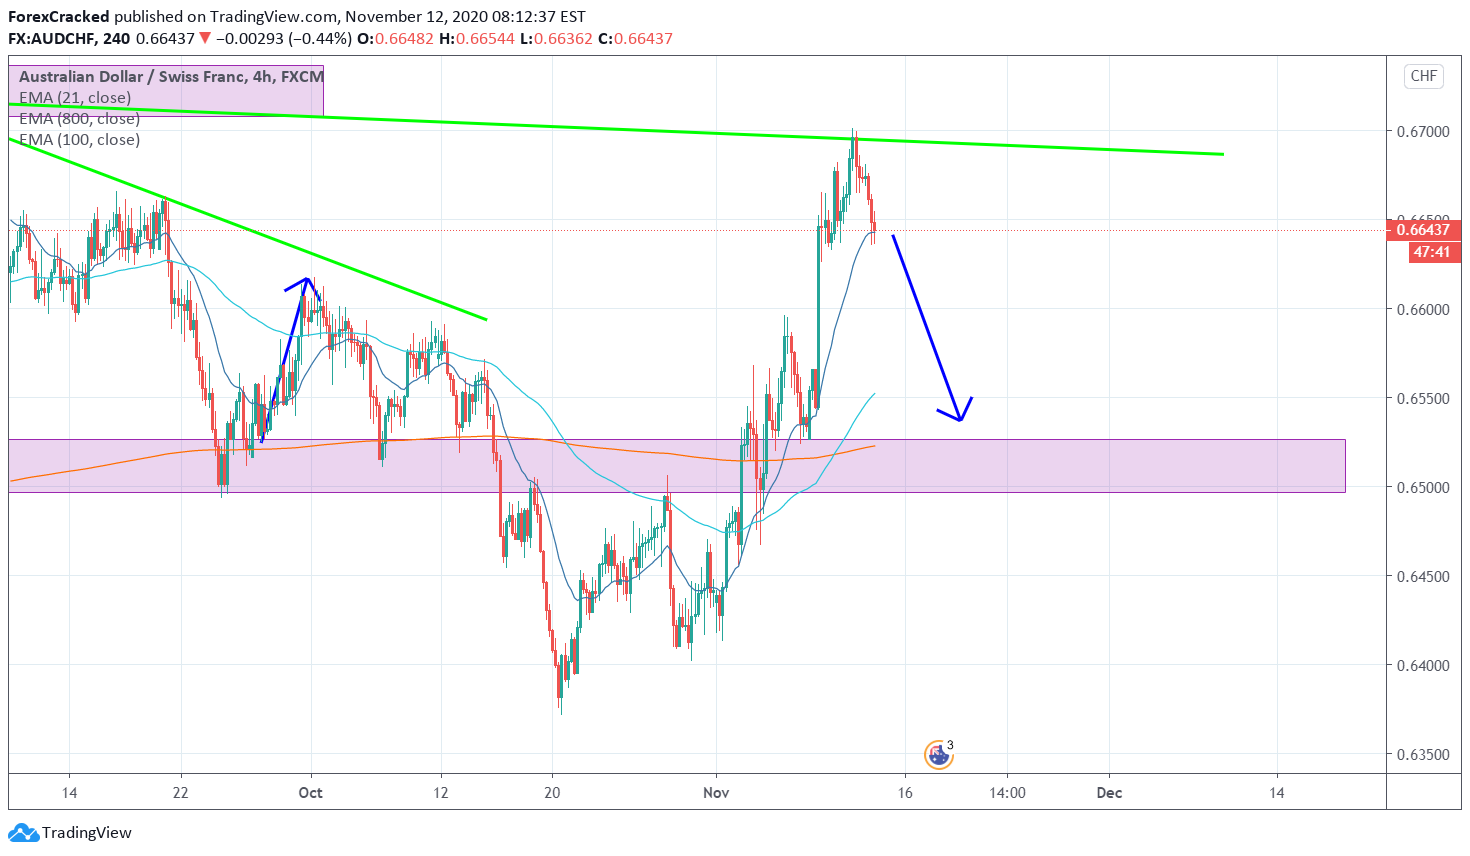 AUDCHF 4H 11/12/2020 Market Overview - ForexCracked